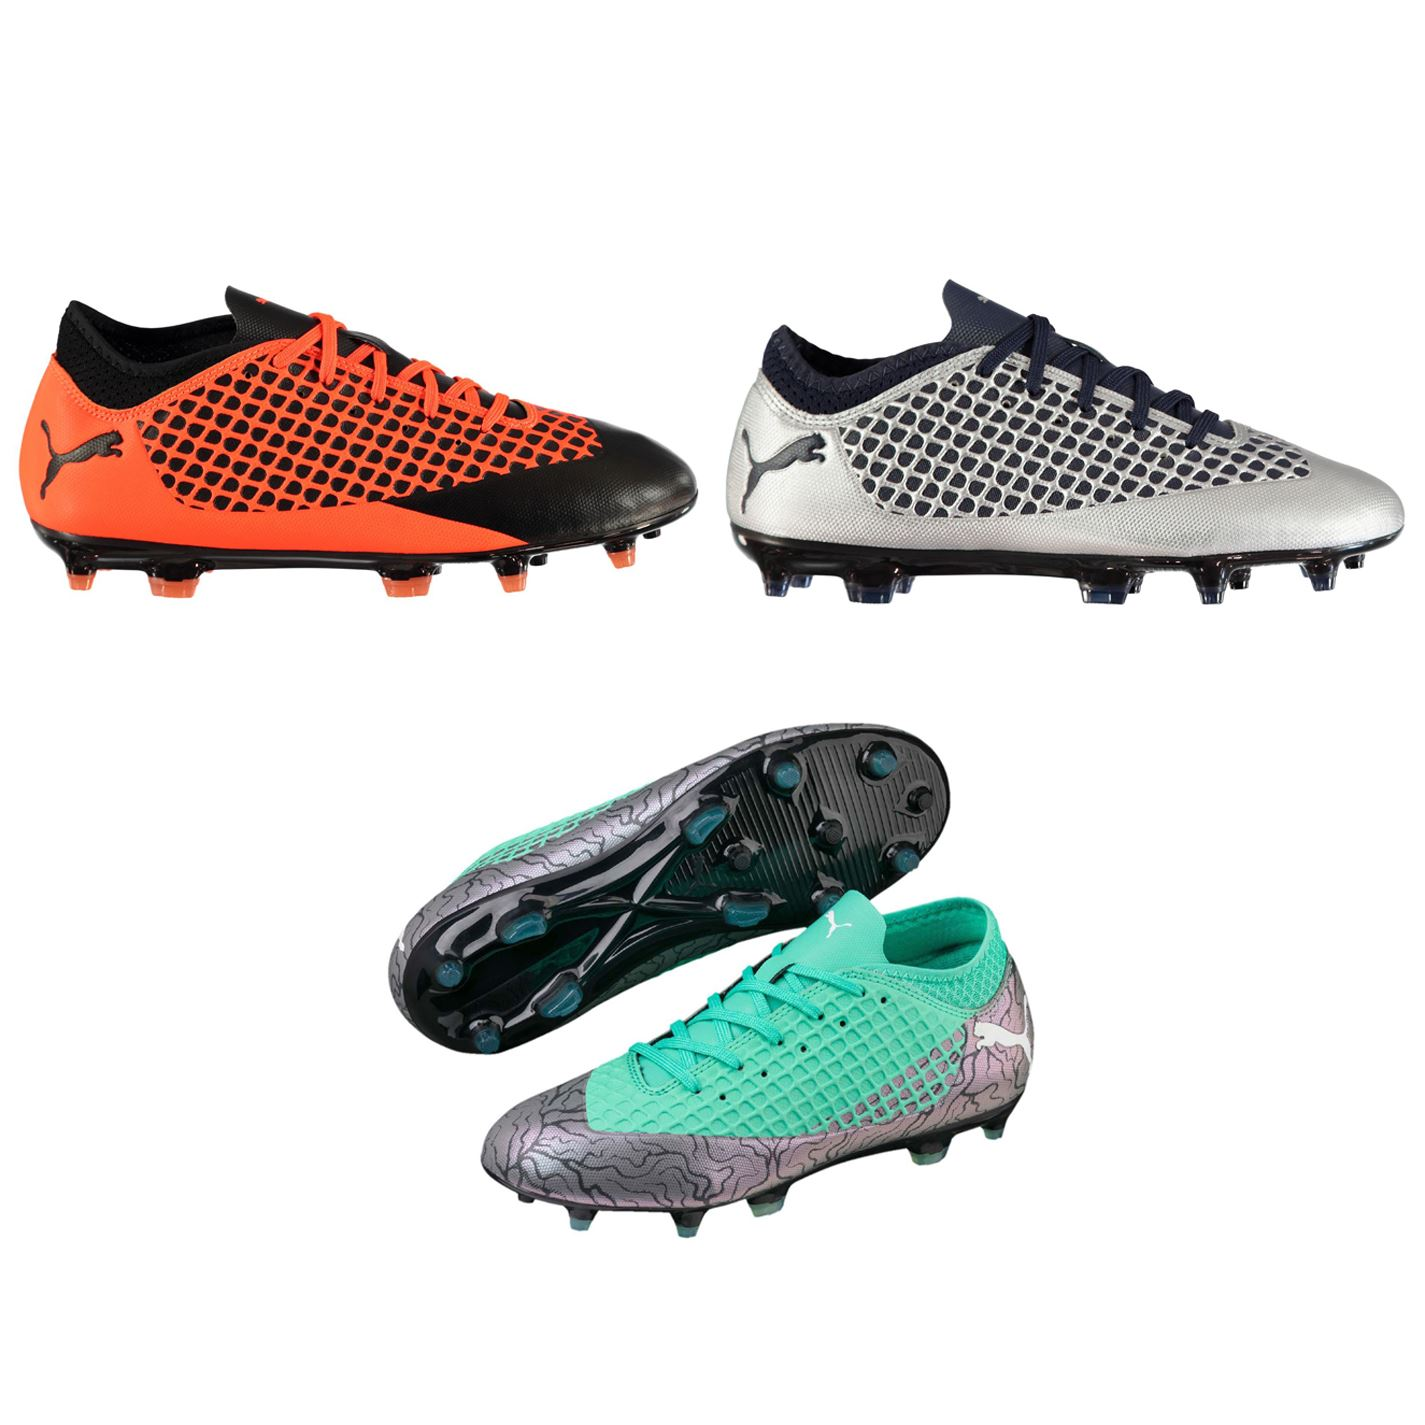 5cf98f7f3cab ... Puma Future 2.4 FG Firm Ground Football Boots Juniors Soccer Shoes  Cleats ...